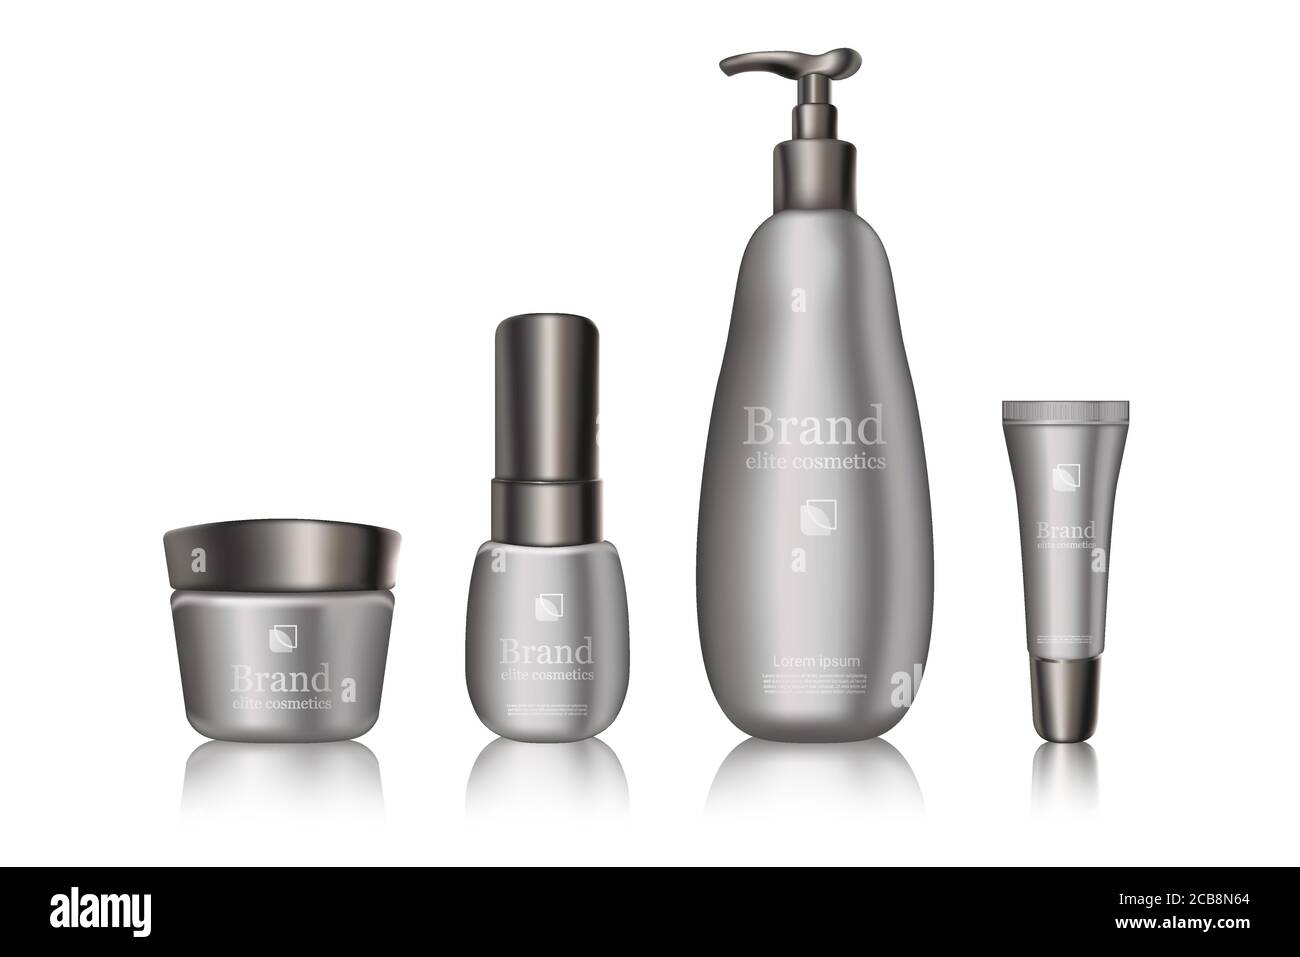 White Grey Cosmetics Branded Bottles With Brand Logo Package Design Mockup Advertisement Banner Template Skincare Realistic Products With Reflection On Light Background Mock Up Stock Vector Image Art Alamy